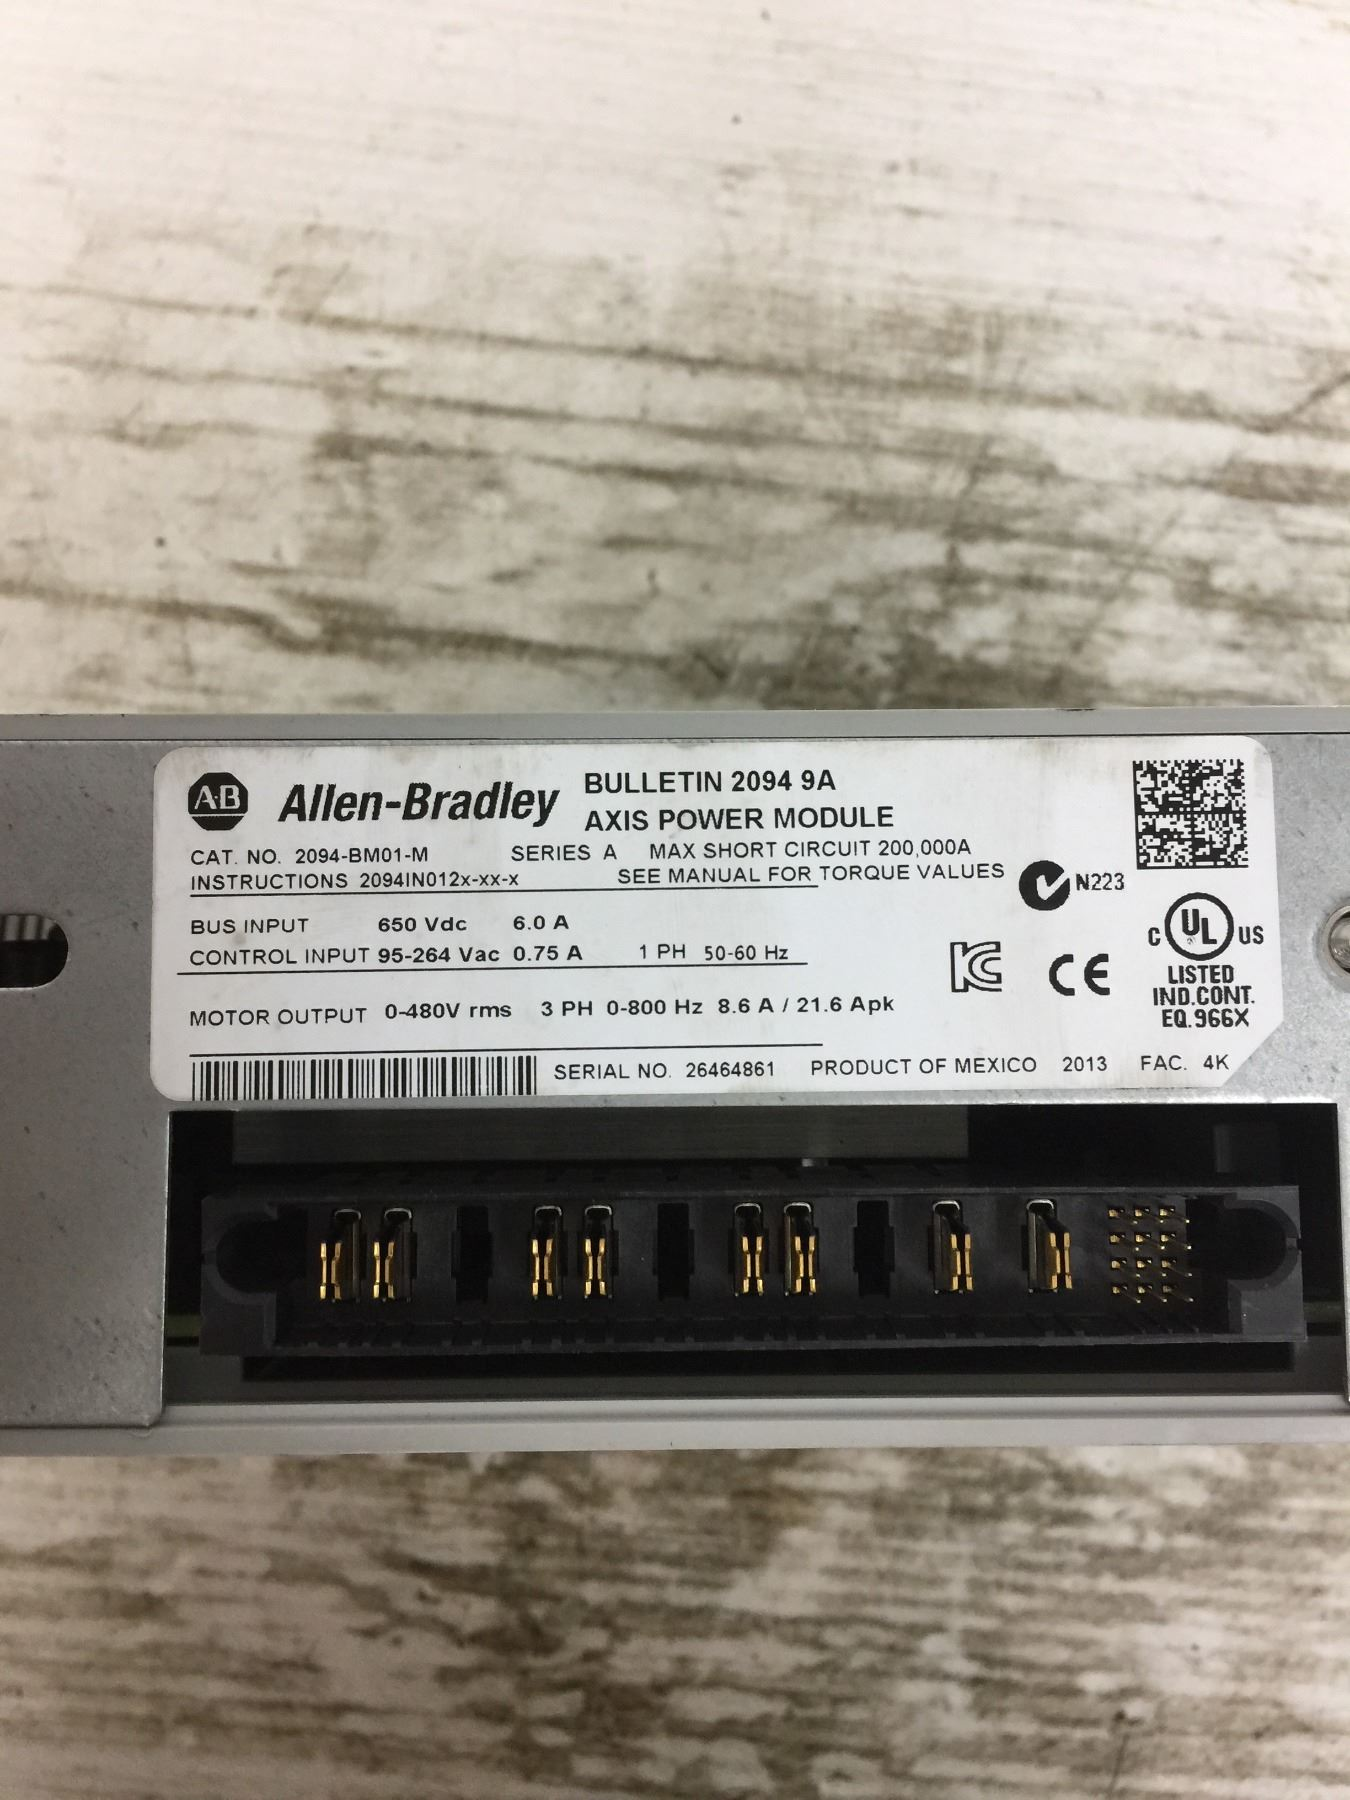 Allen-Bradley 2094-BM01-M Axis Power Module